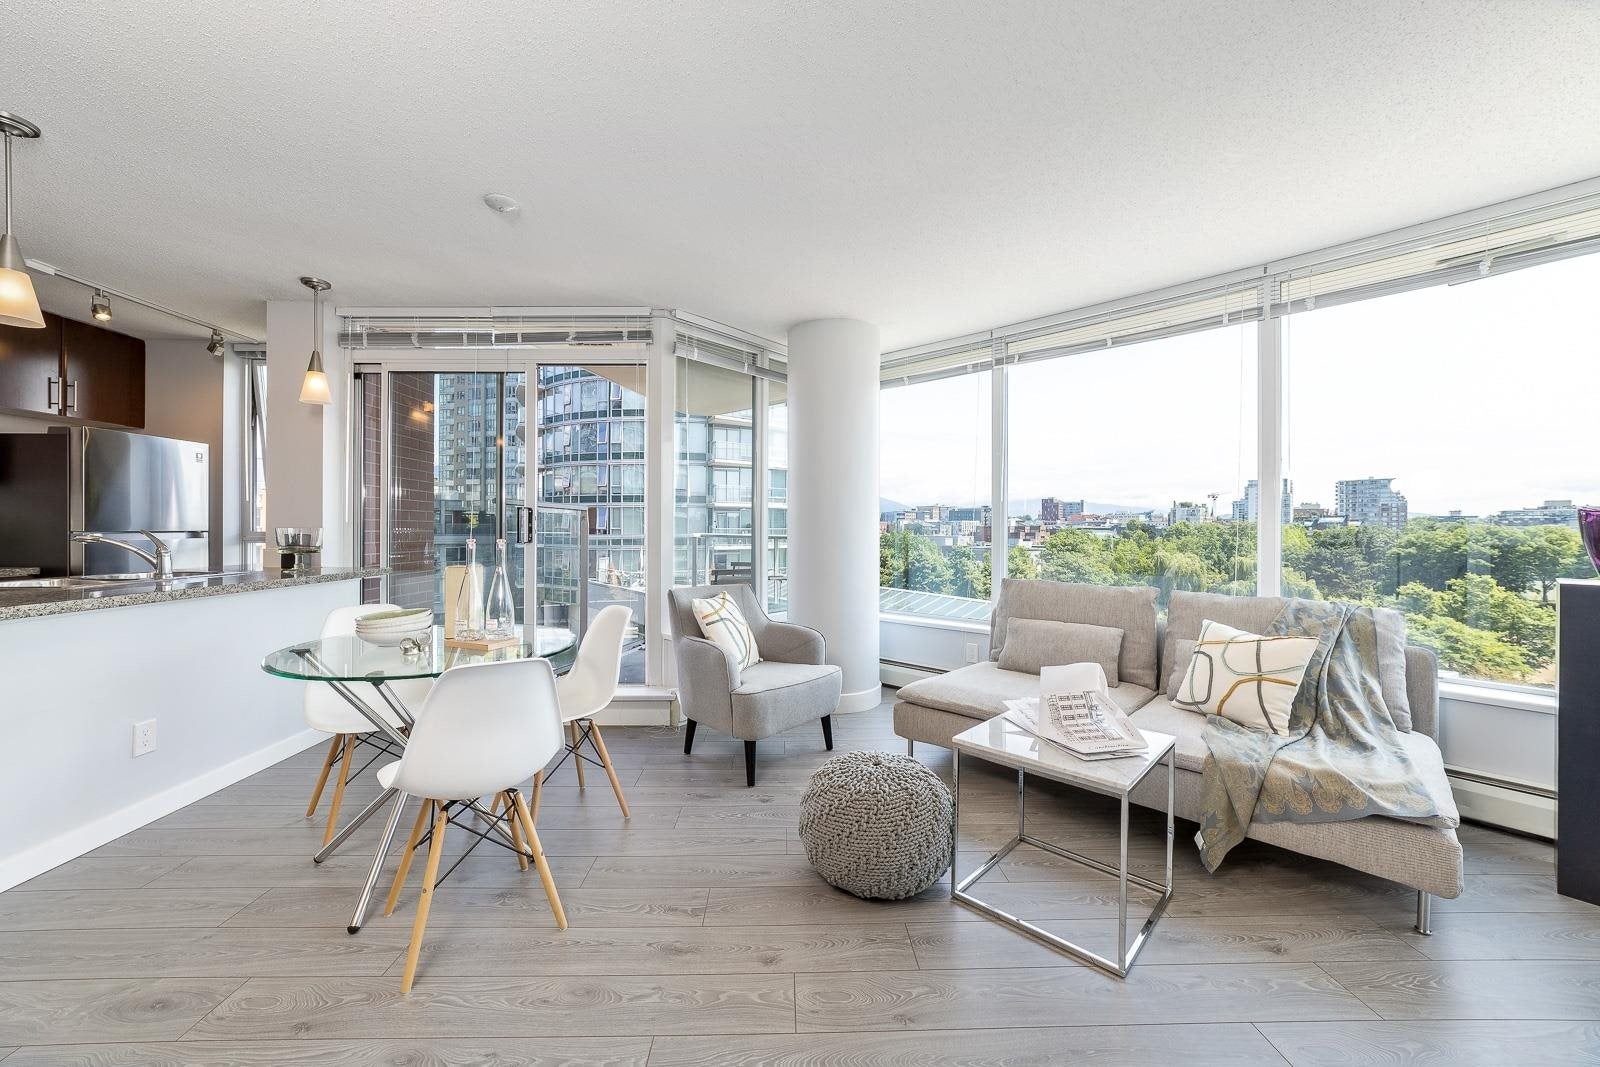 709 688 ABBOTT STREET - Downtown VW Apartment/Condo for sale, 2 Bedrooms (R2599532) - #1